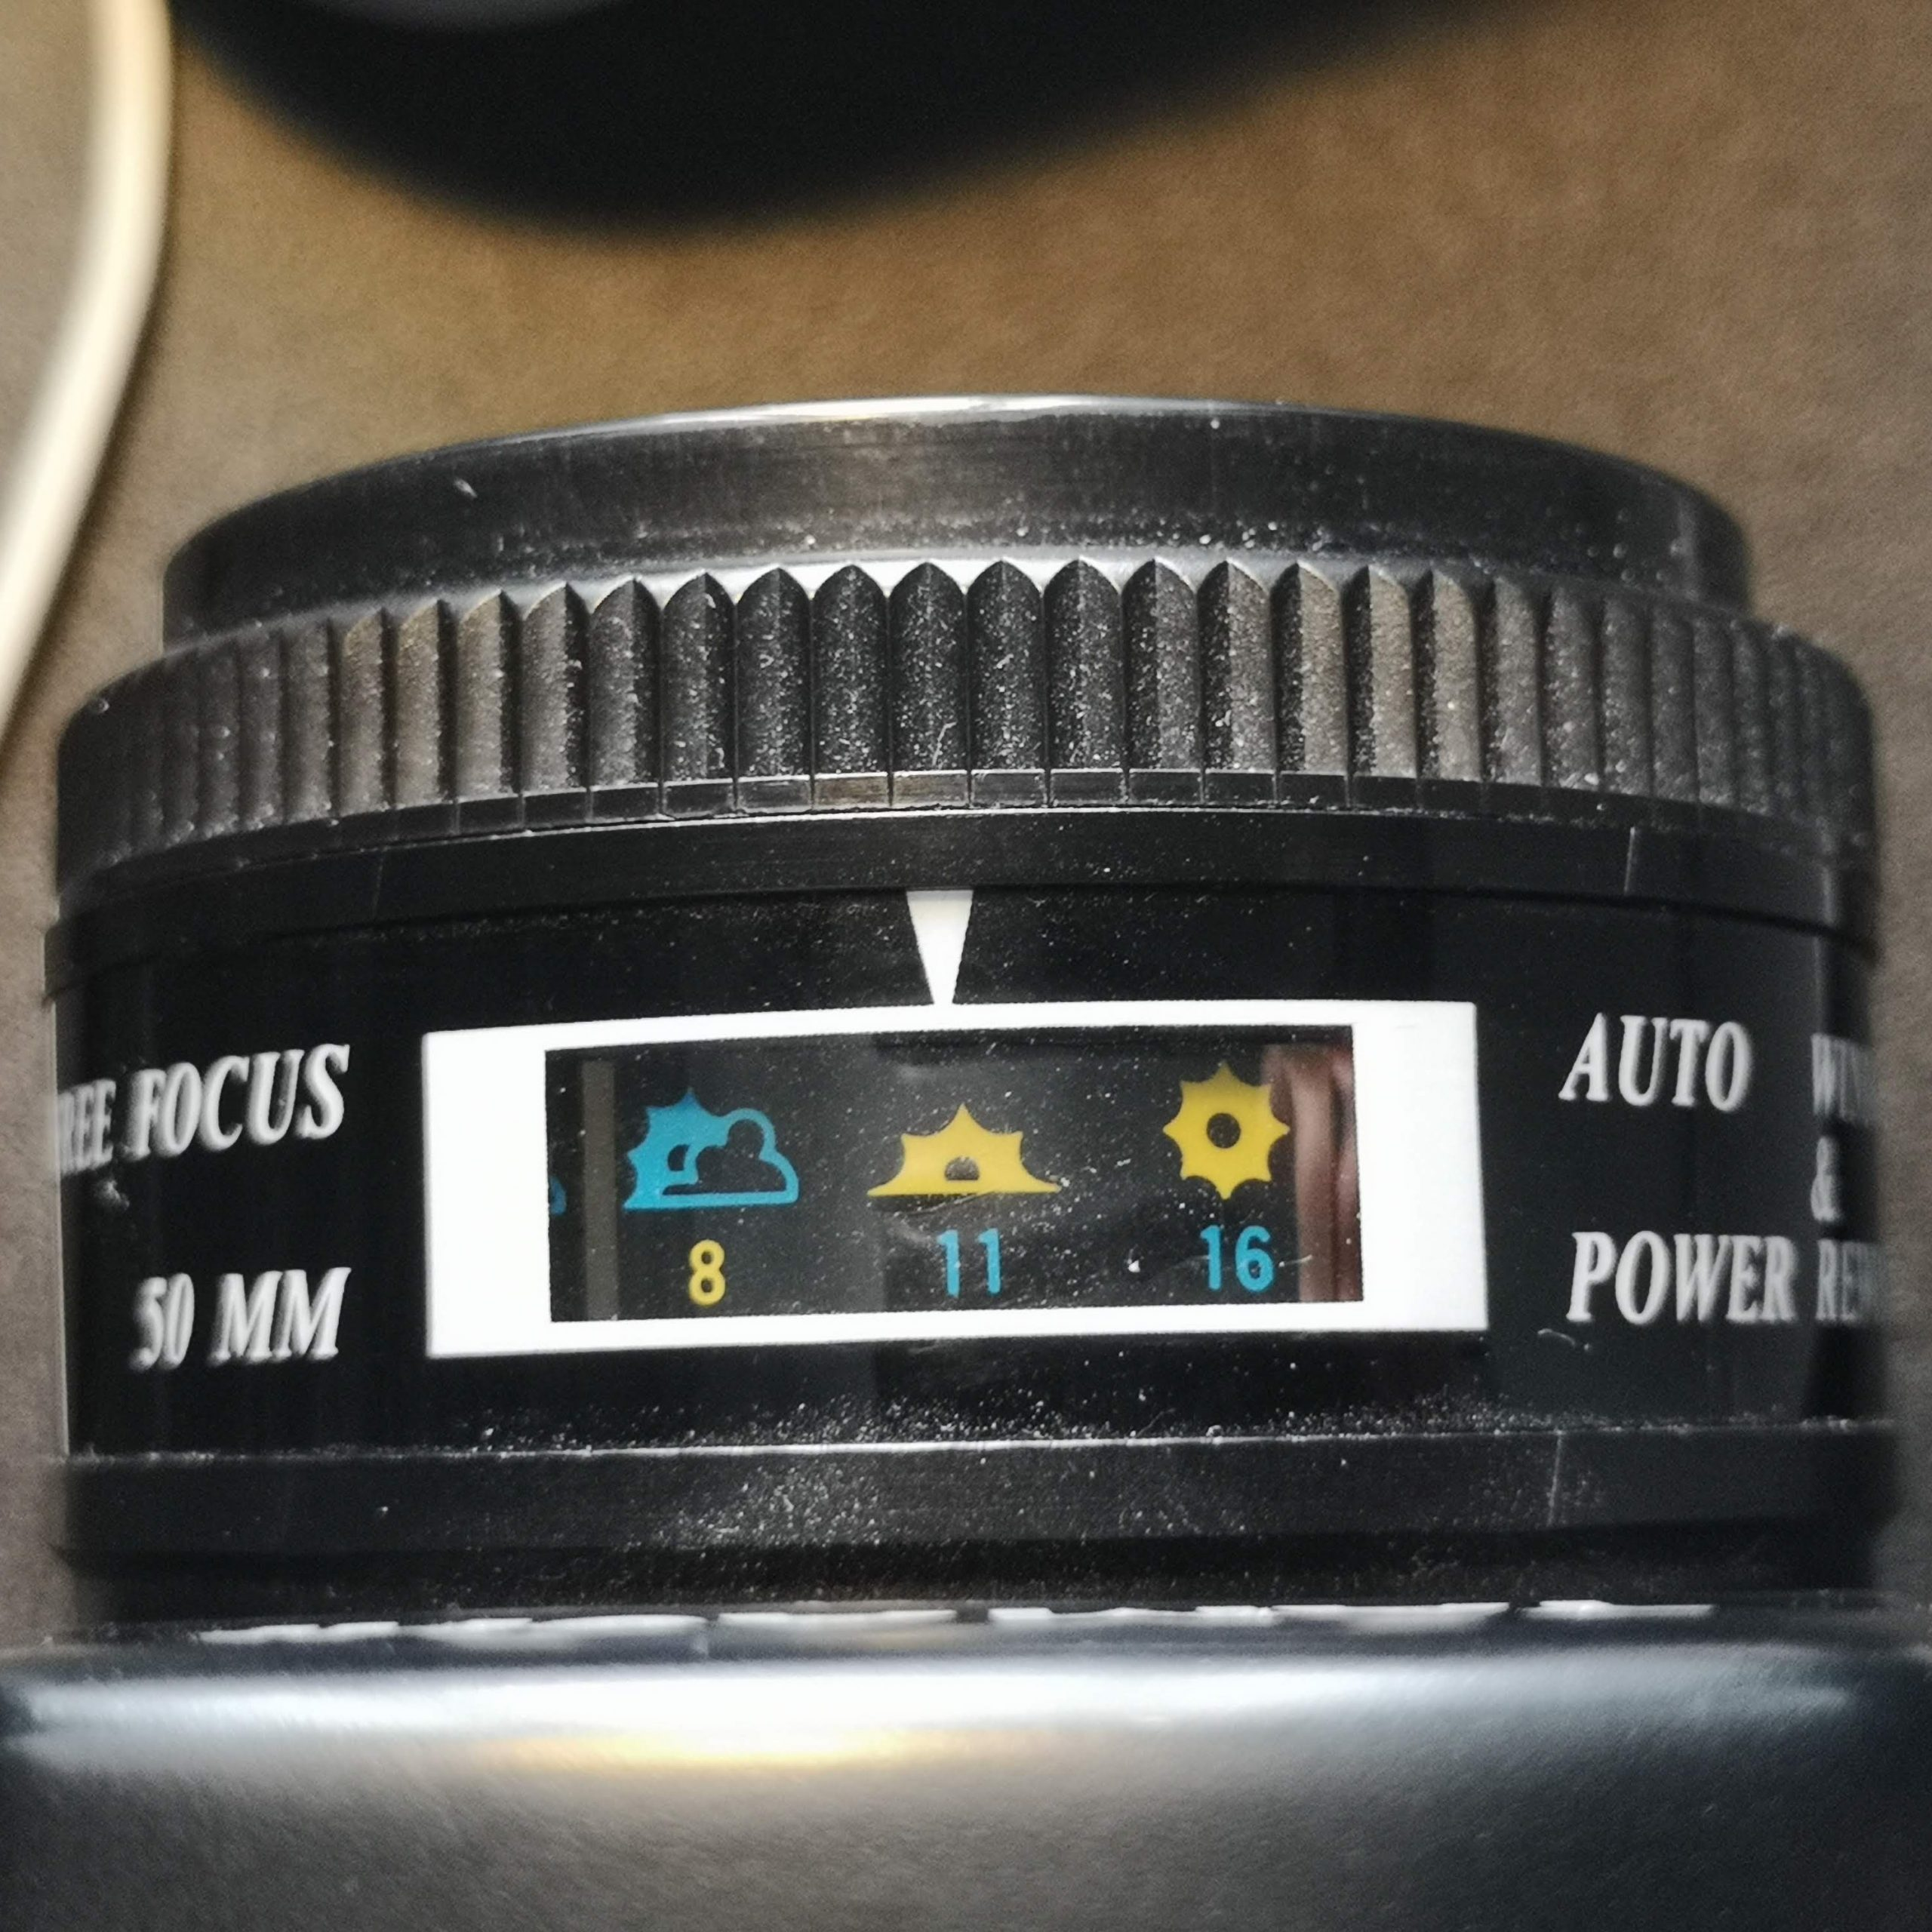 Aperture display on QP8000